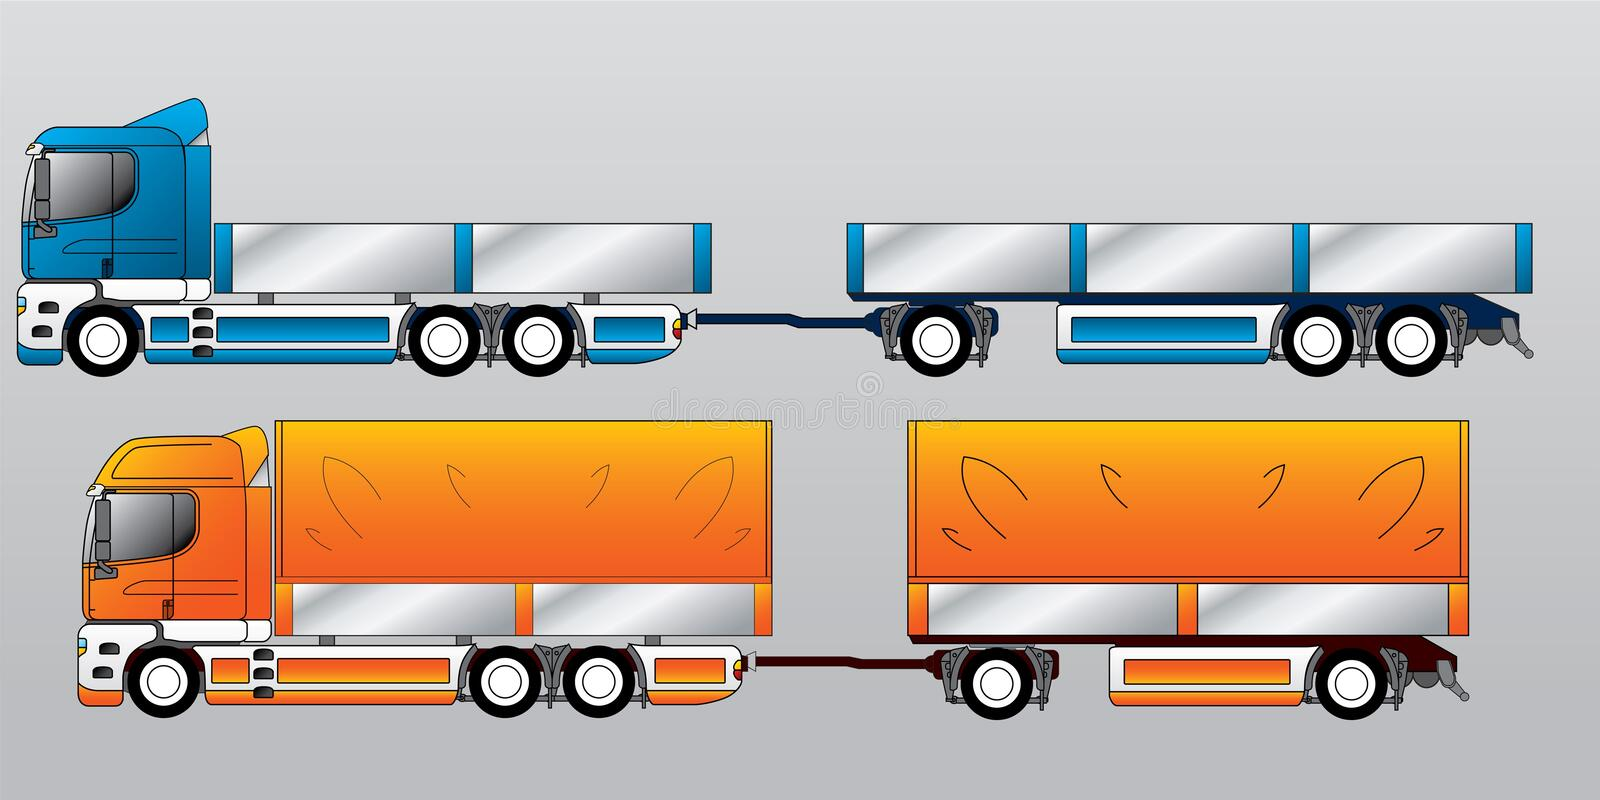 Truck with trailer royalty free illustration